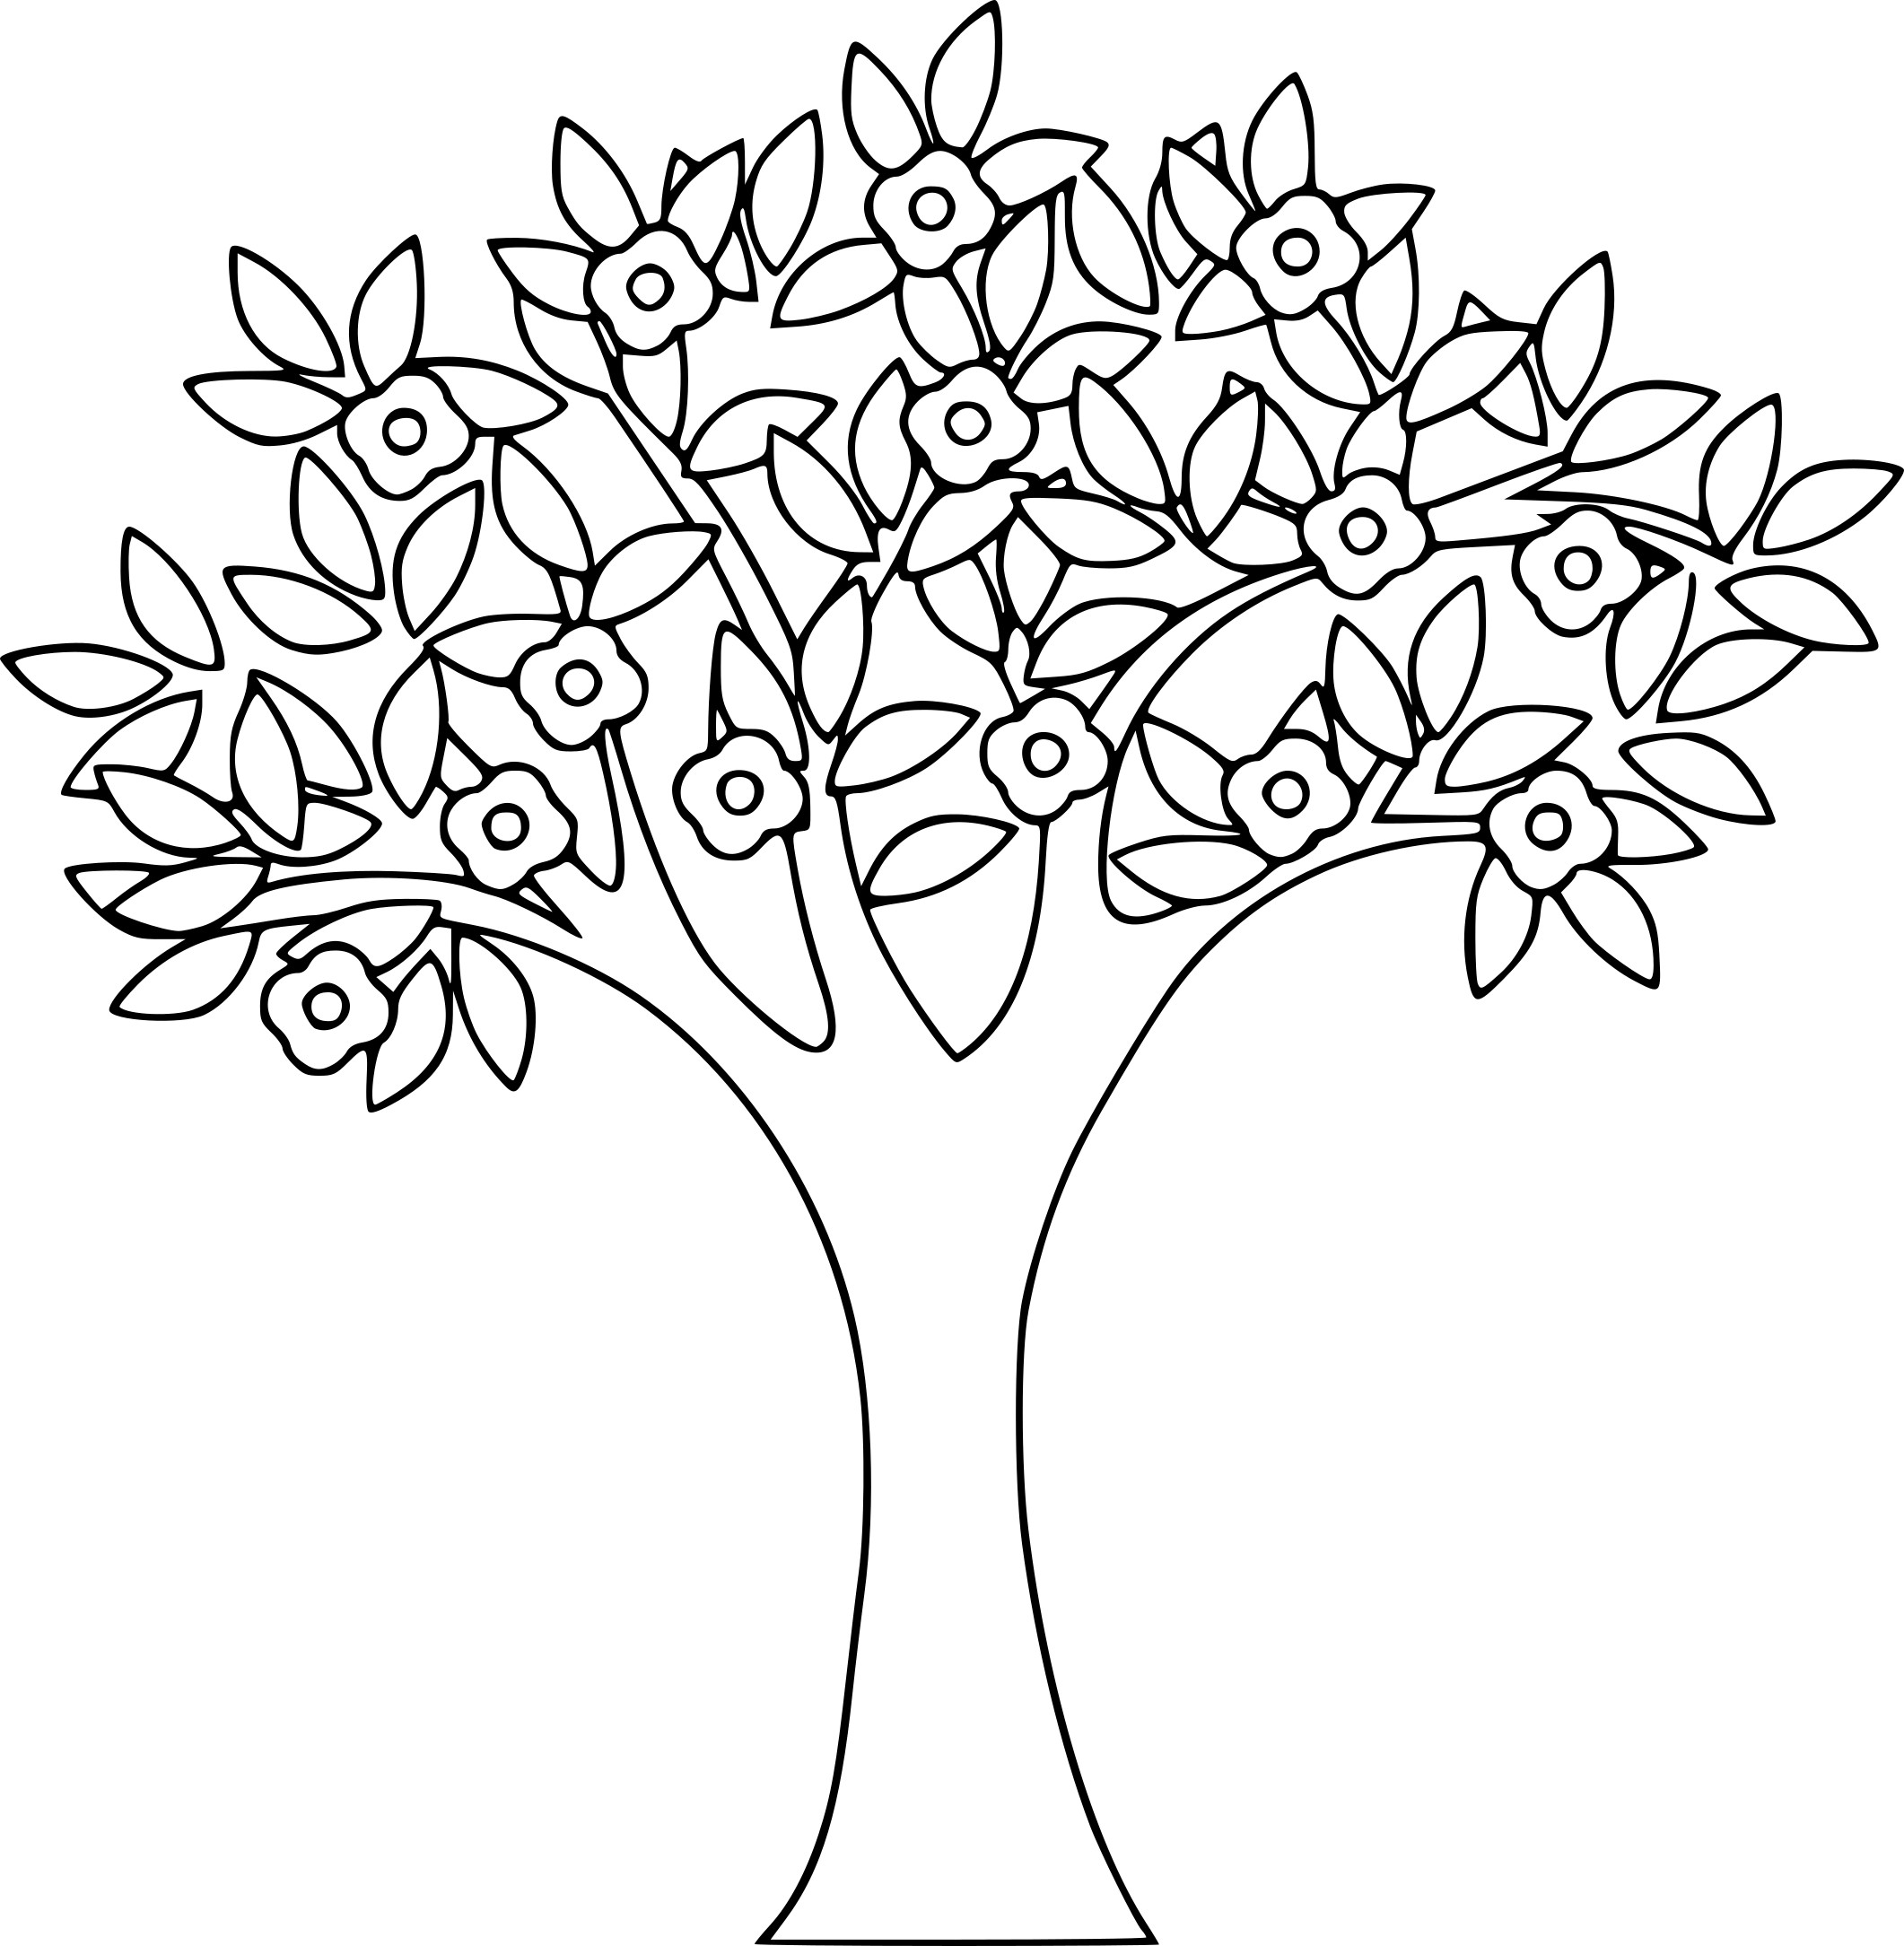 Coloriage arbre printemps imprimer sur coloriages info - Image du printemps a colorier ...